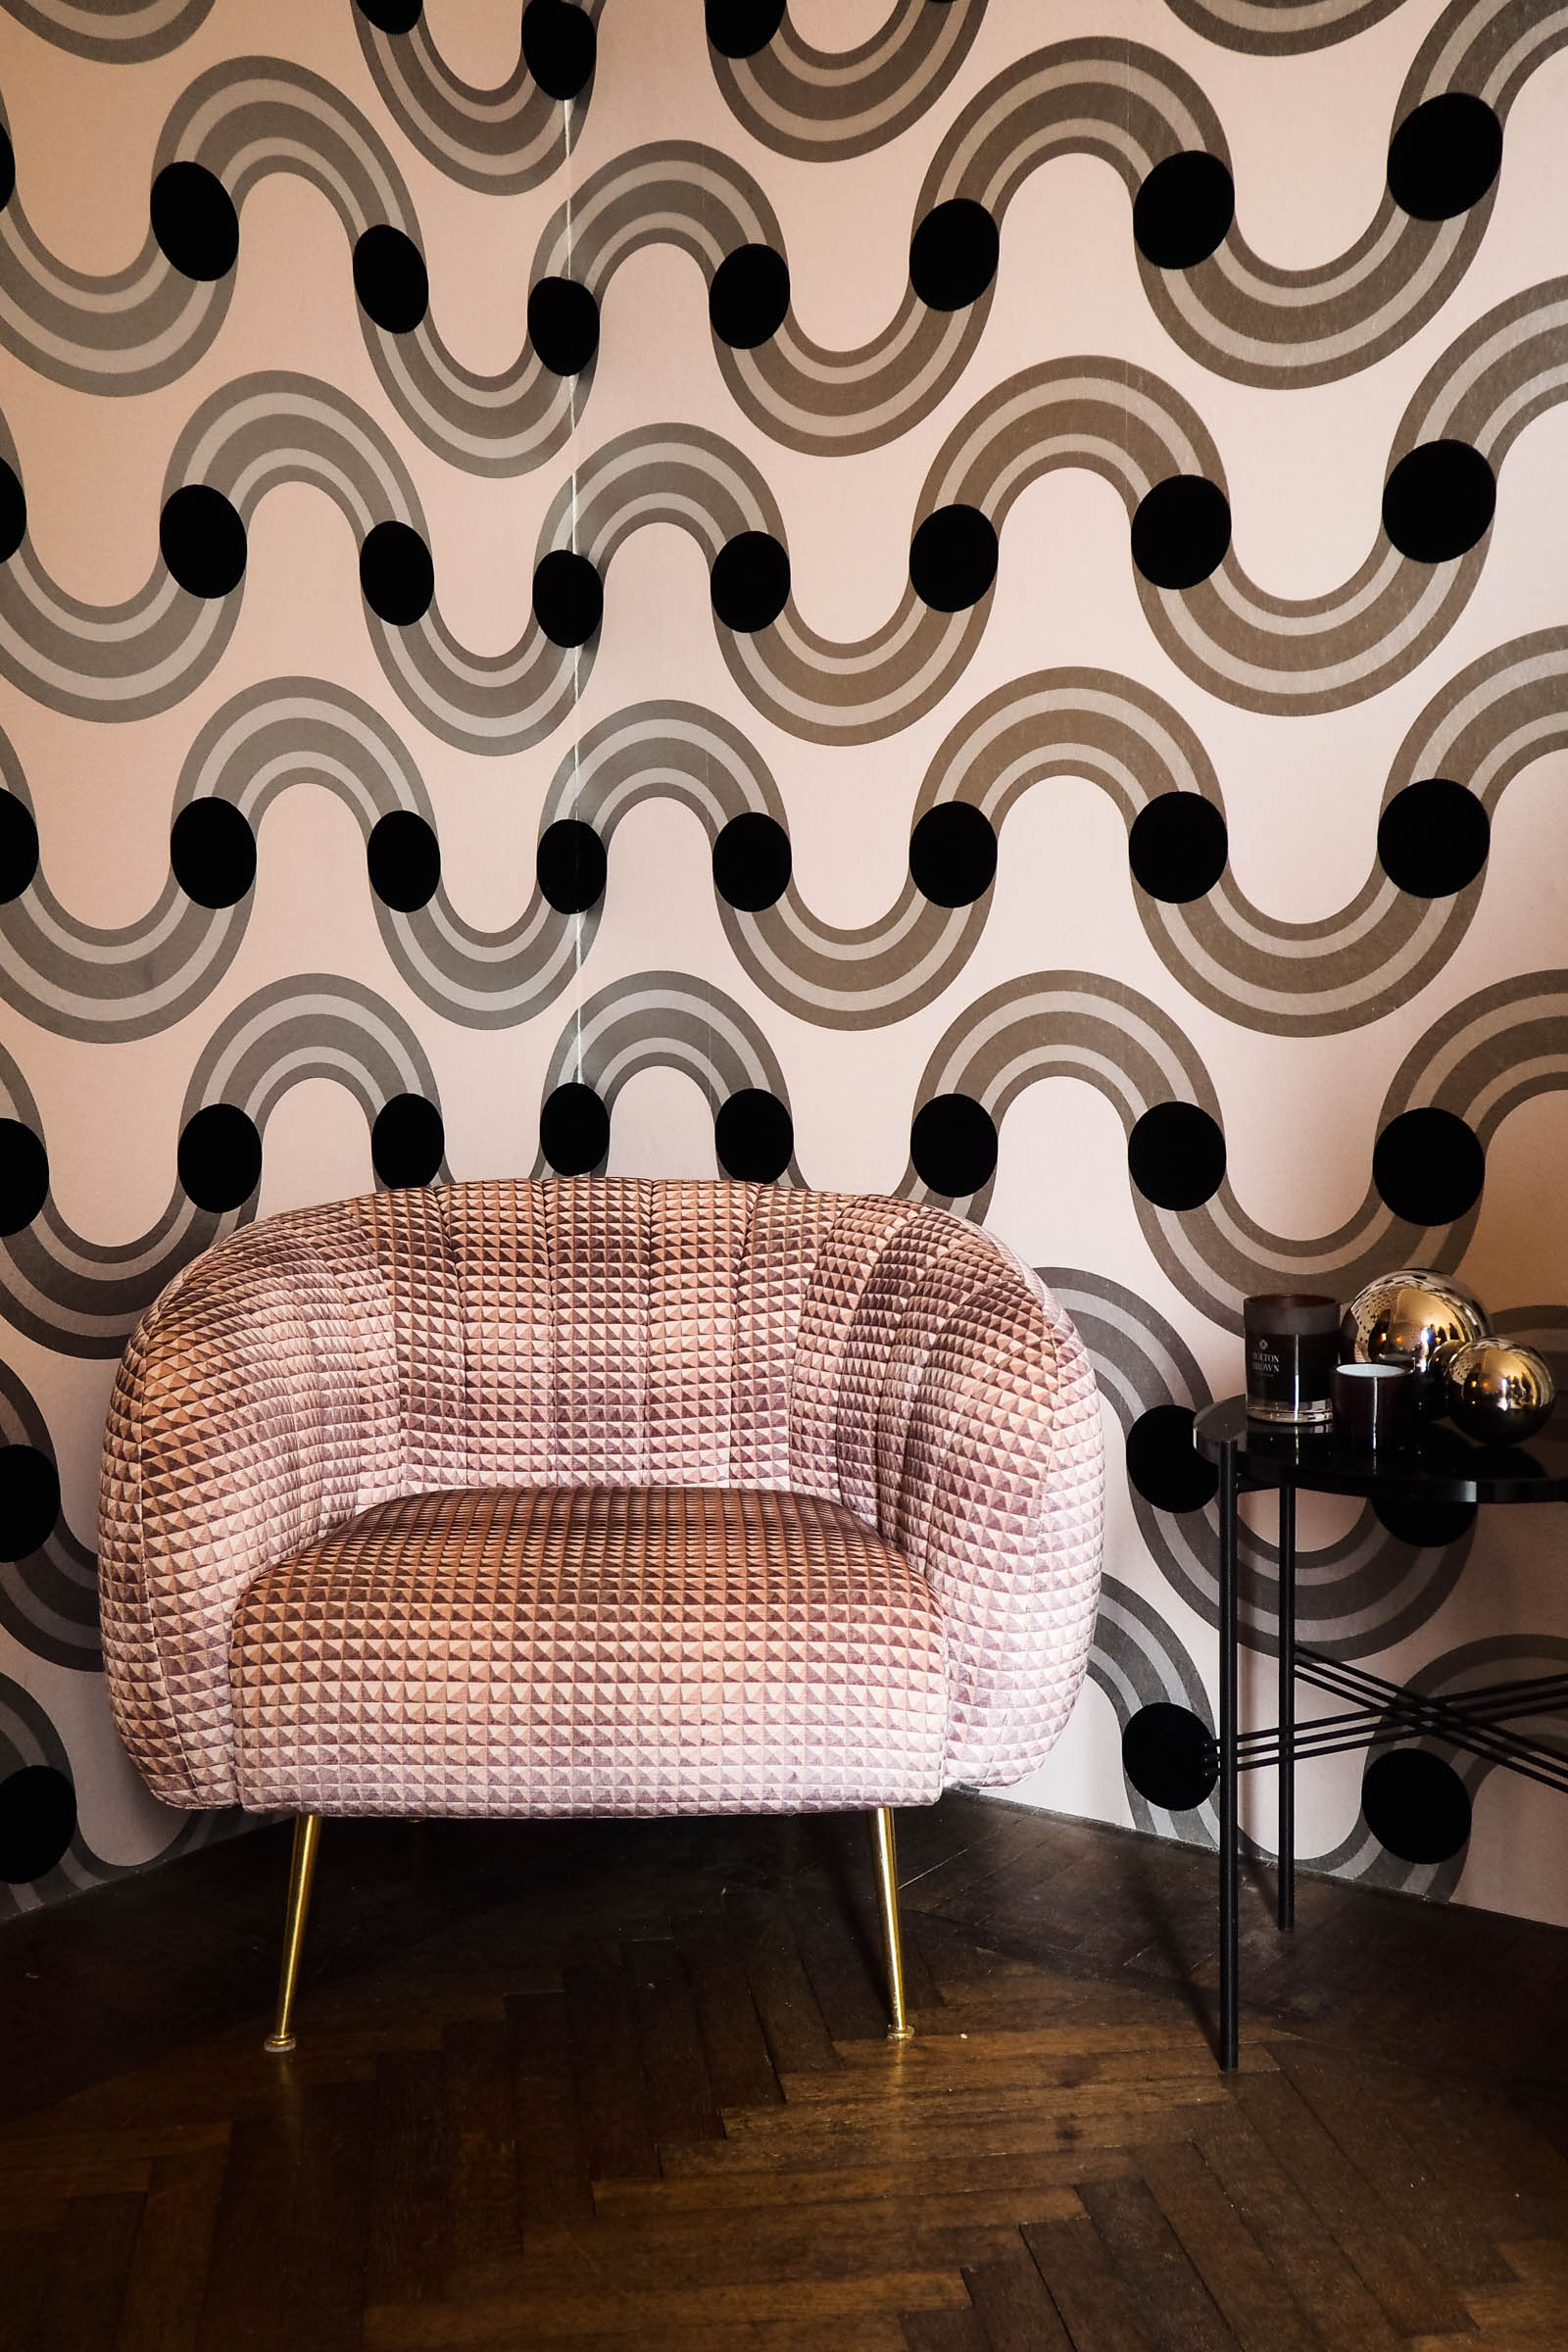 Read all about my first experience of Milan design week - eley kishimoto for kirkby